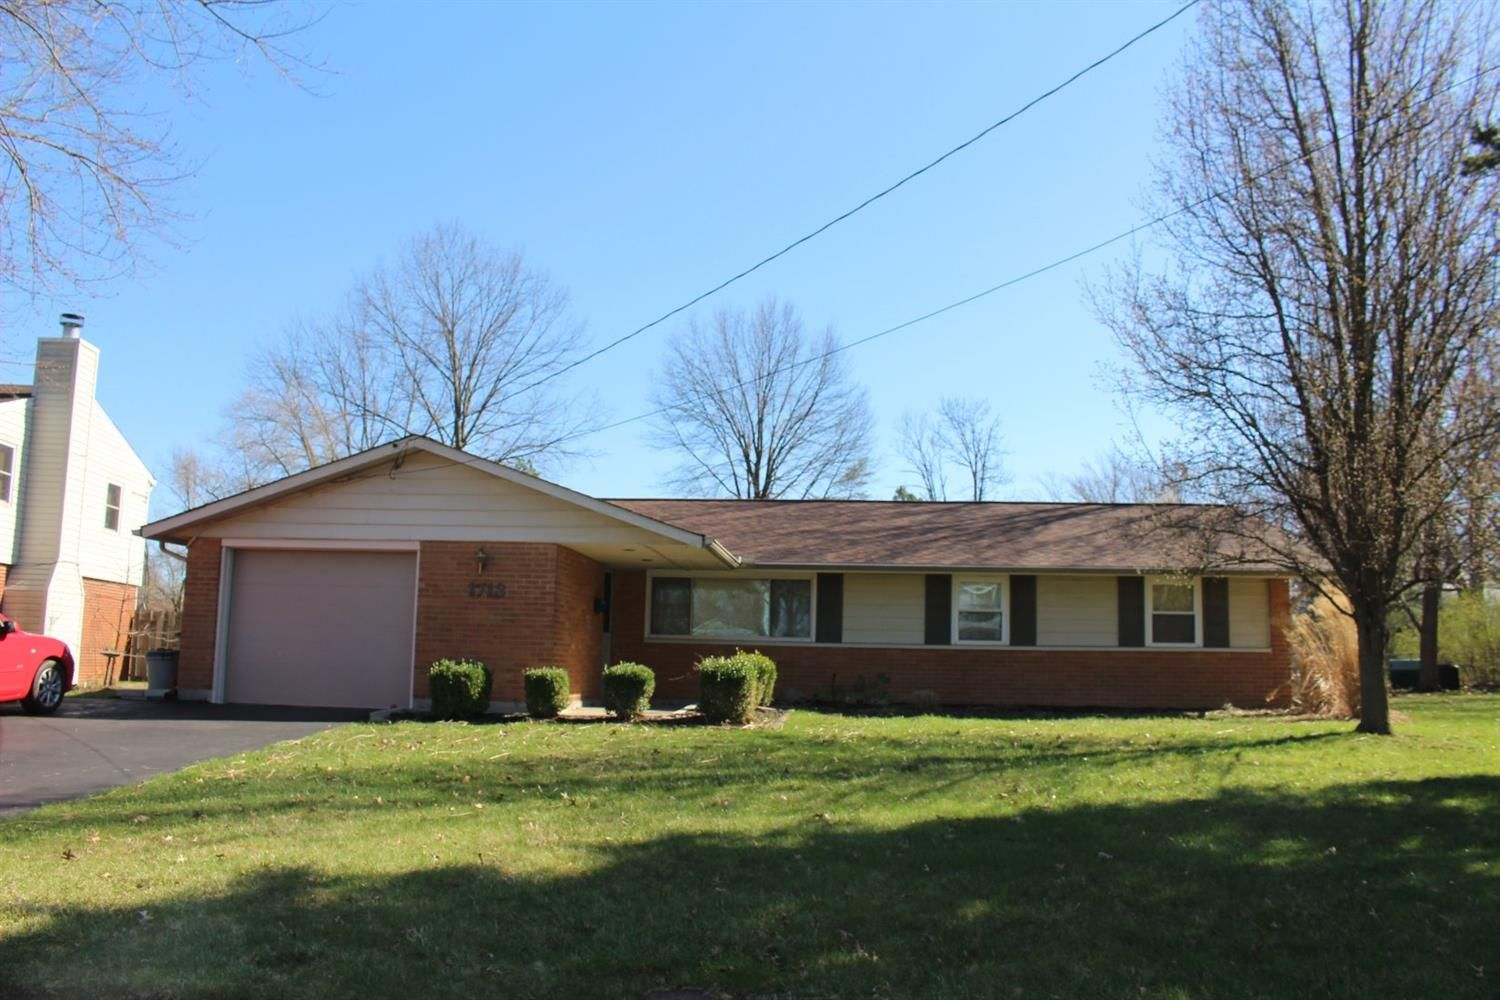 Real Estate Photo 1 For 1713 Stockton Dr Loveland Oh 45140 Asking 135 000 Sold For 137000 House Styles Home Warranty House